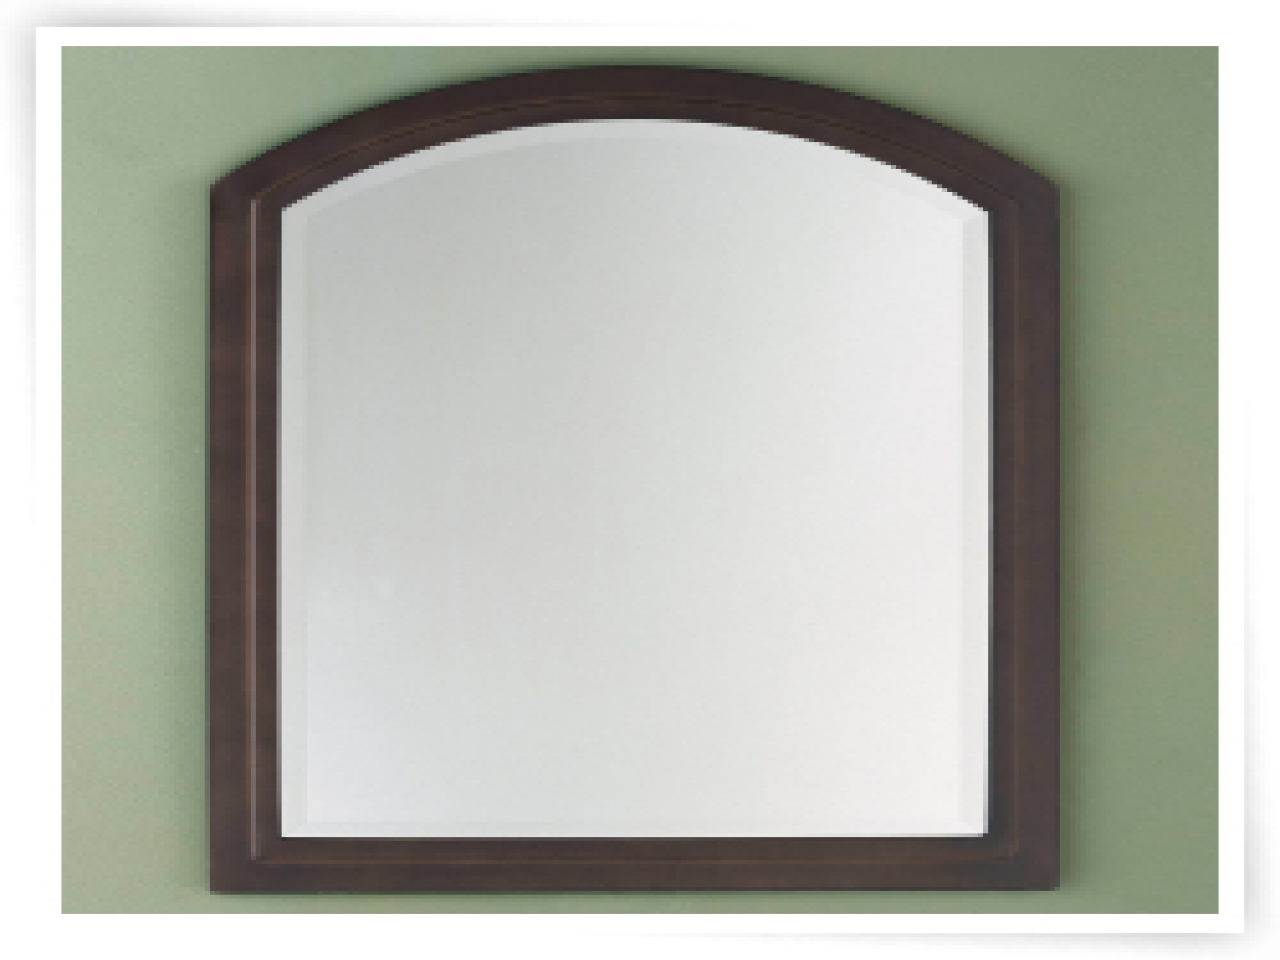 Arched Bathroom Mirrors Okpick Intended For Arched Mirrors Bathroom (Image 3 of 15)